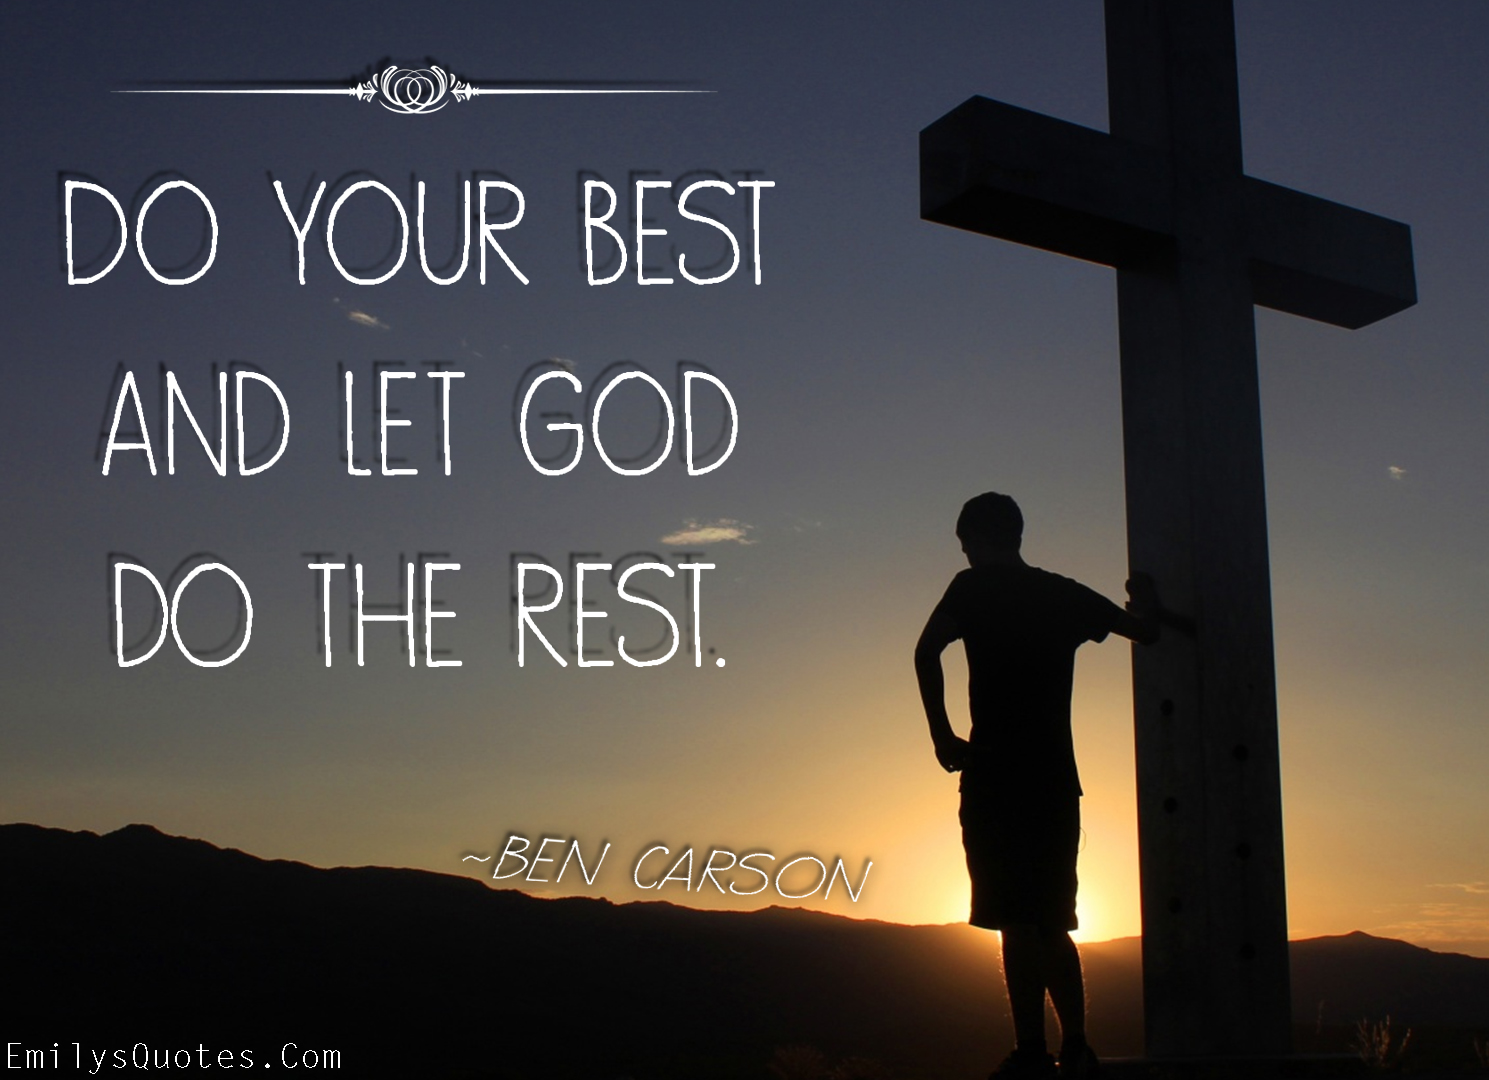 Inspirational God Quotes Pleasing Do Your Best And Let God Do The Rest  Popular Inspirational